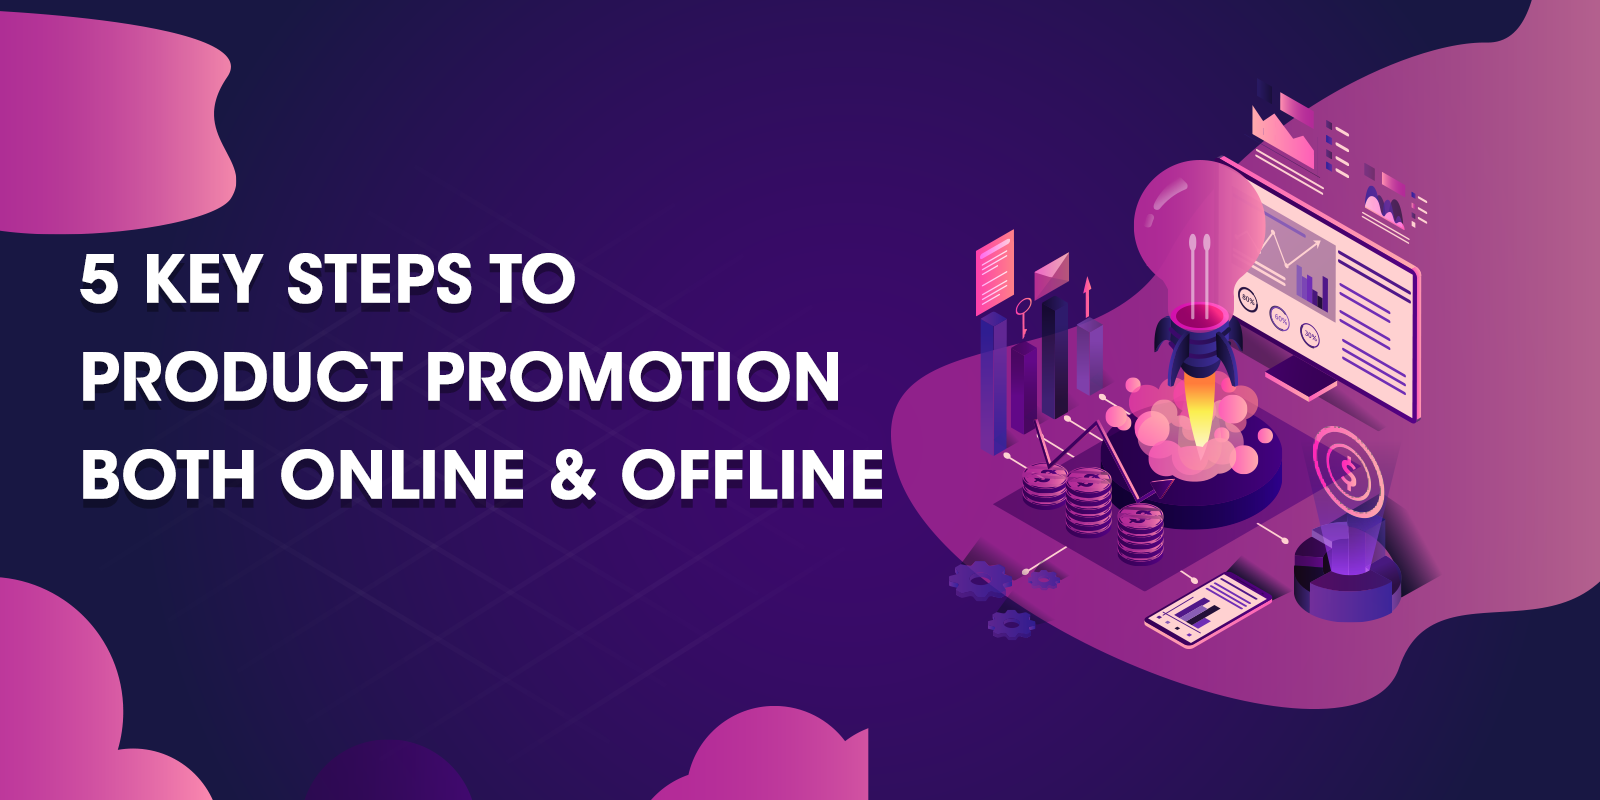 5 Key Steps to Product Promotion Both Online and Offline